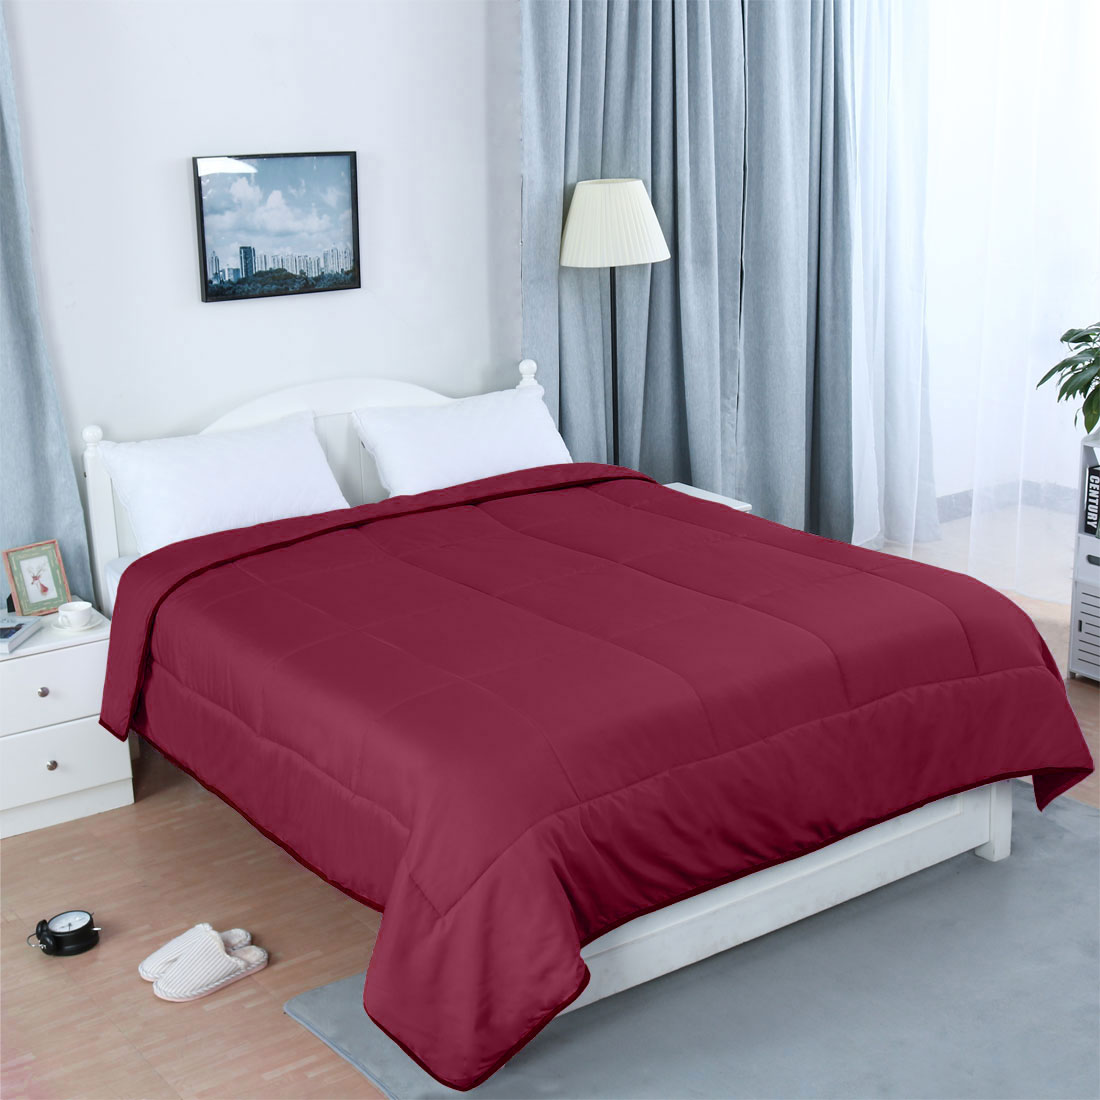 All-season Comforter Quilted Down Alternative 100% Polyester Burgundy King